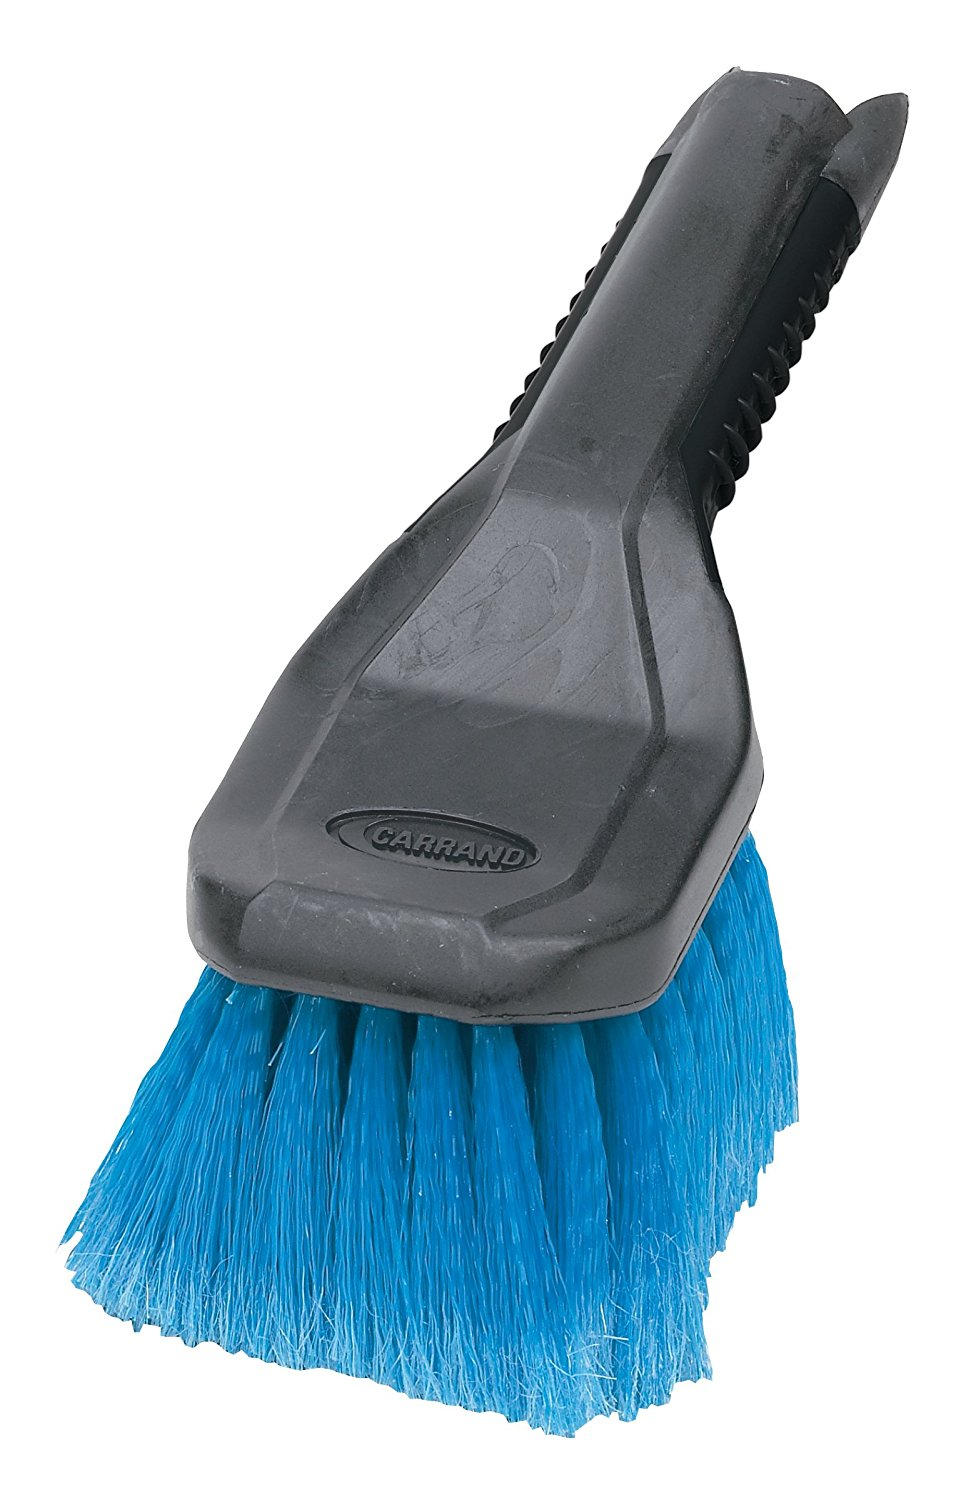 Image of Carrand Body Brush with Over Molded Grip